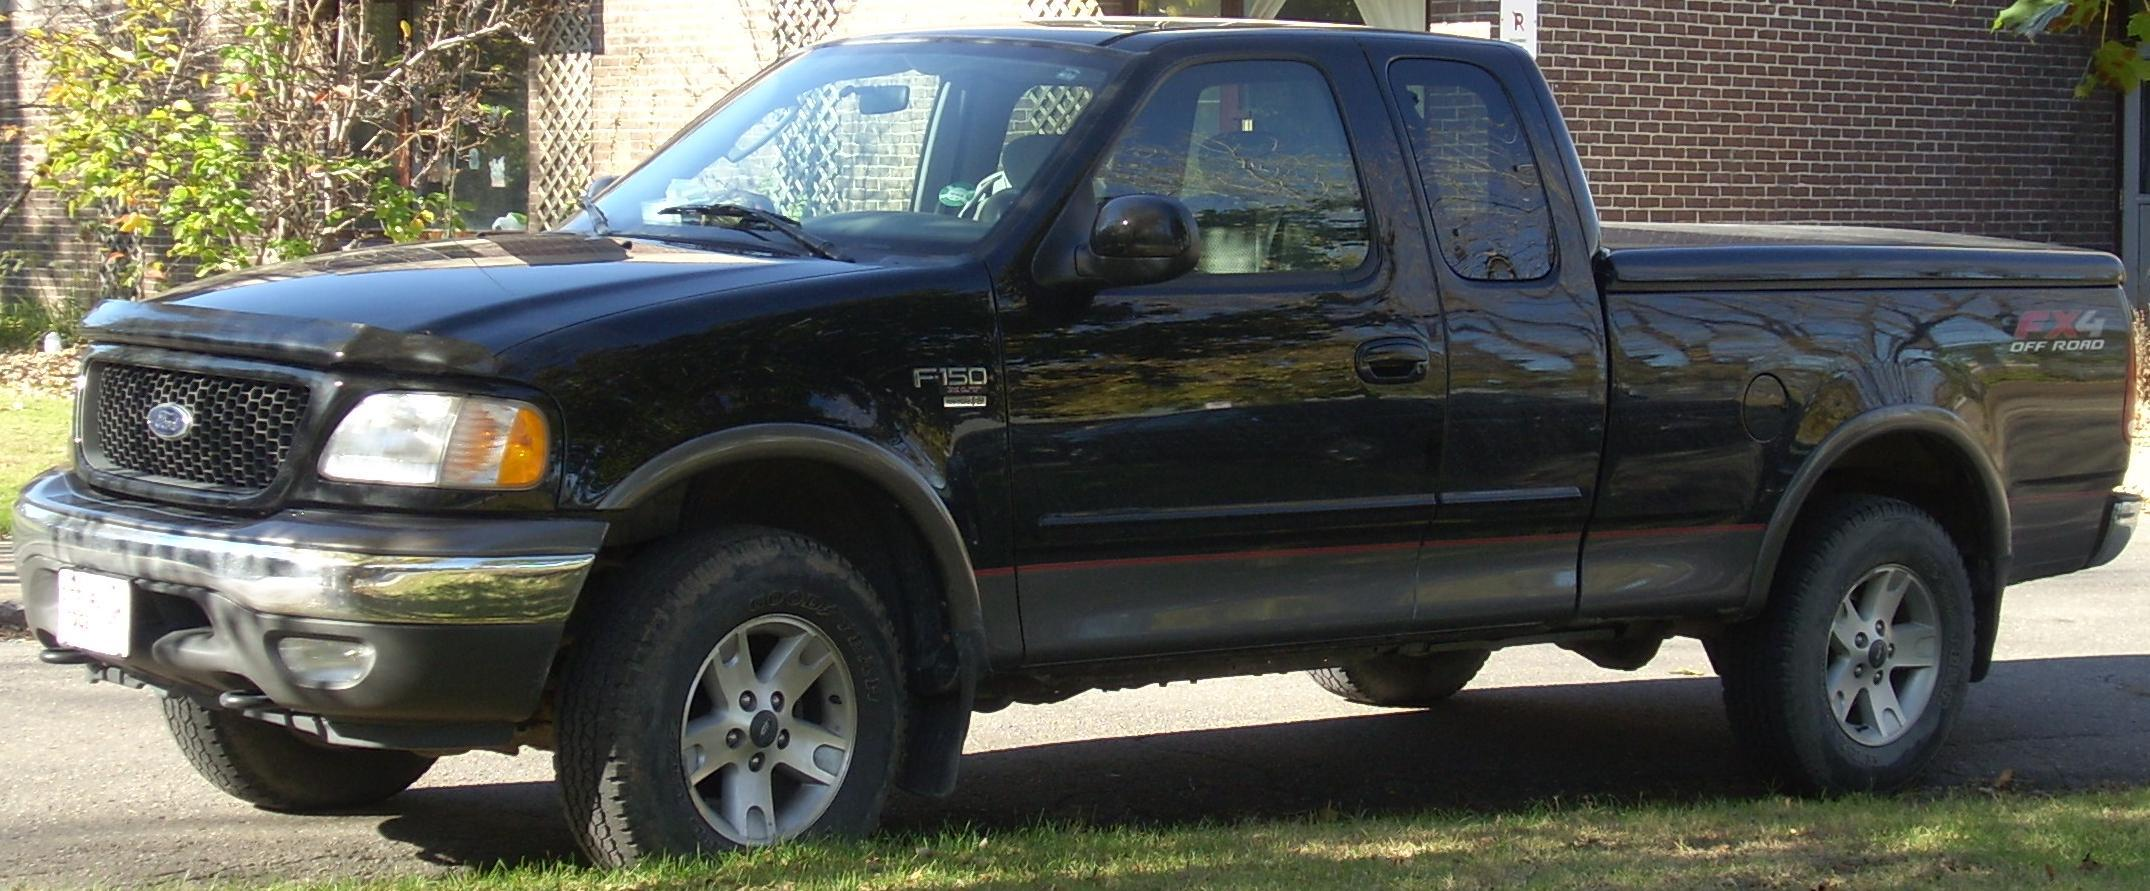 Fileford f 150 xlt extended cab jpg